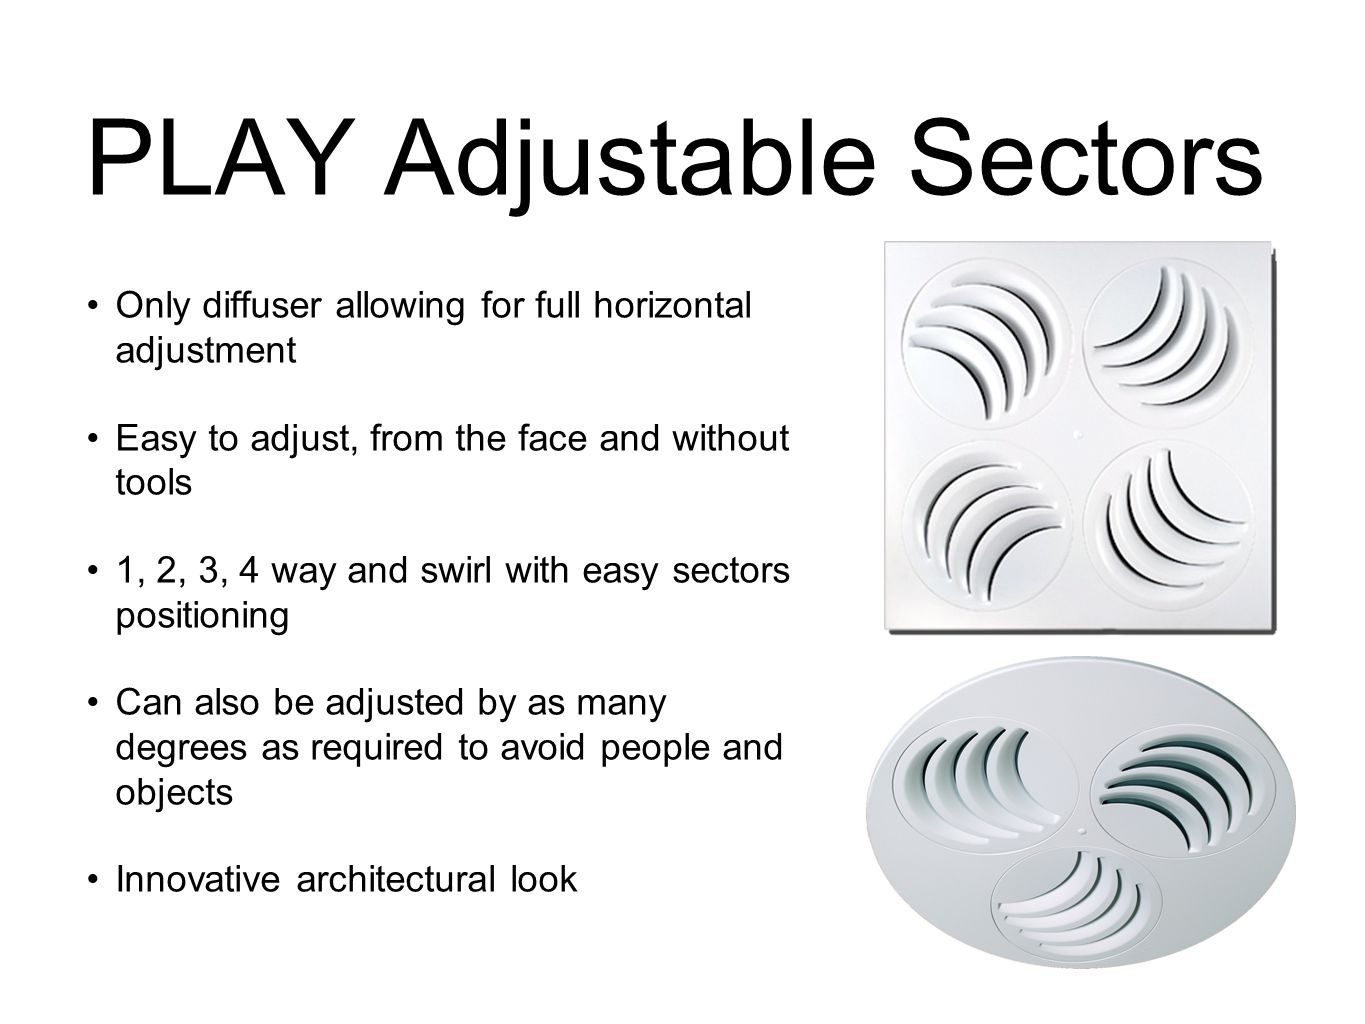 PLAY Adjustable Sectors Only diffuser allowing for full horizontal adjustment Easy to adjust, from the face and without tools 1, 2, 3, 4 way and swirl with easy sectors positioning Can also be adjusted by as many degrees as required to avoid people and objects Innovative architectural look